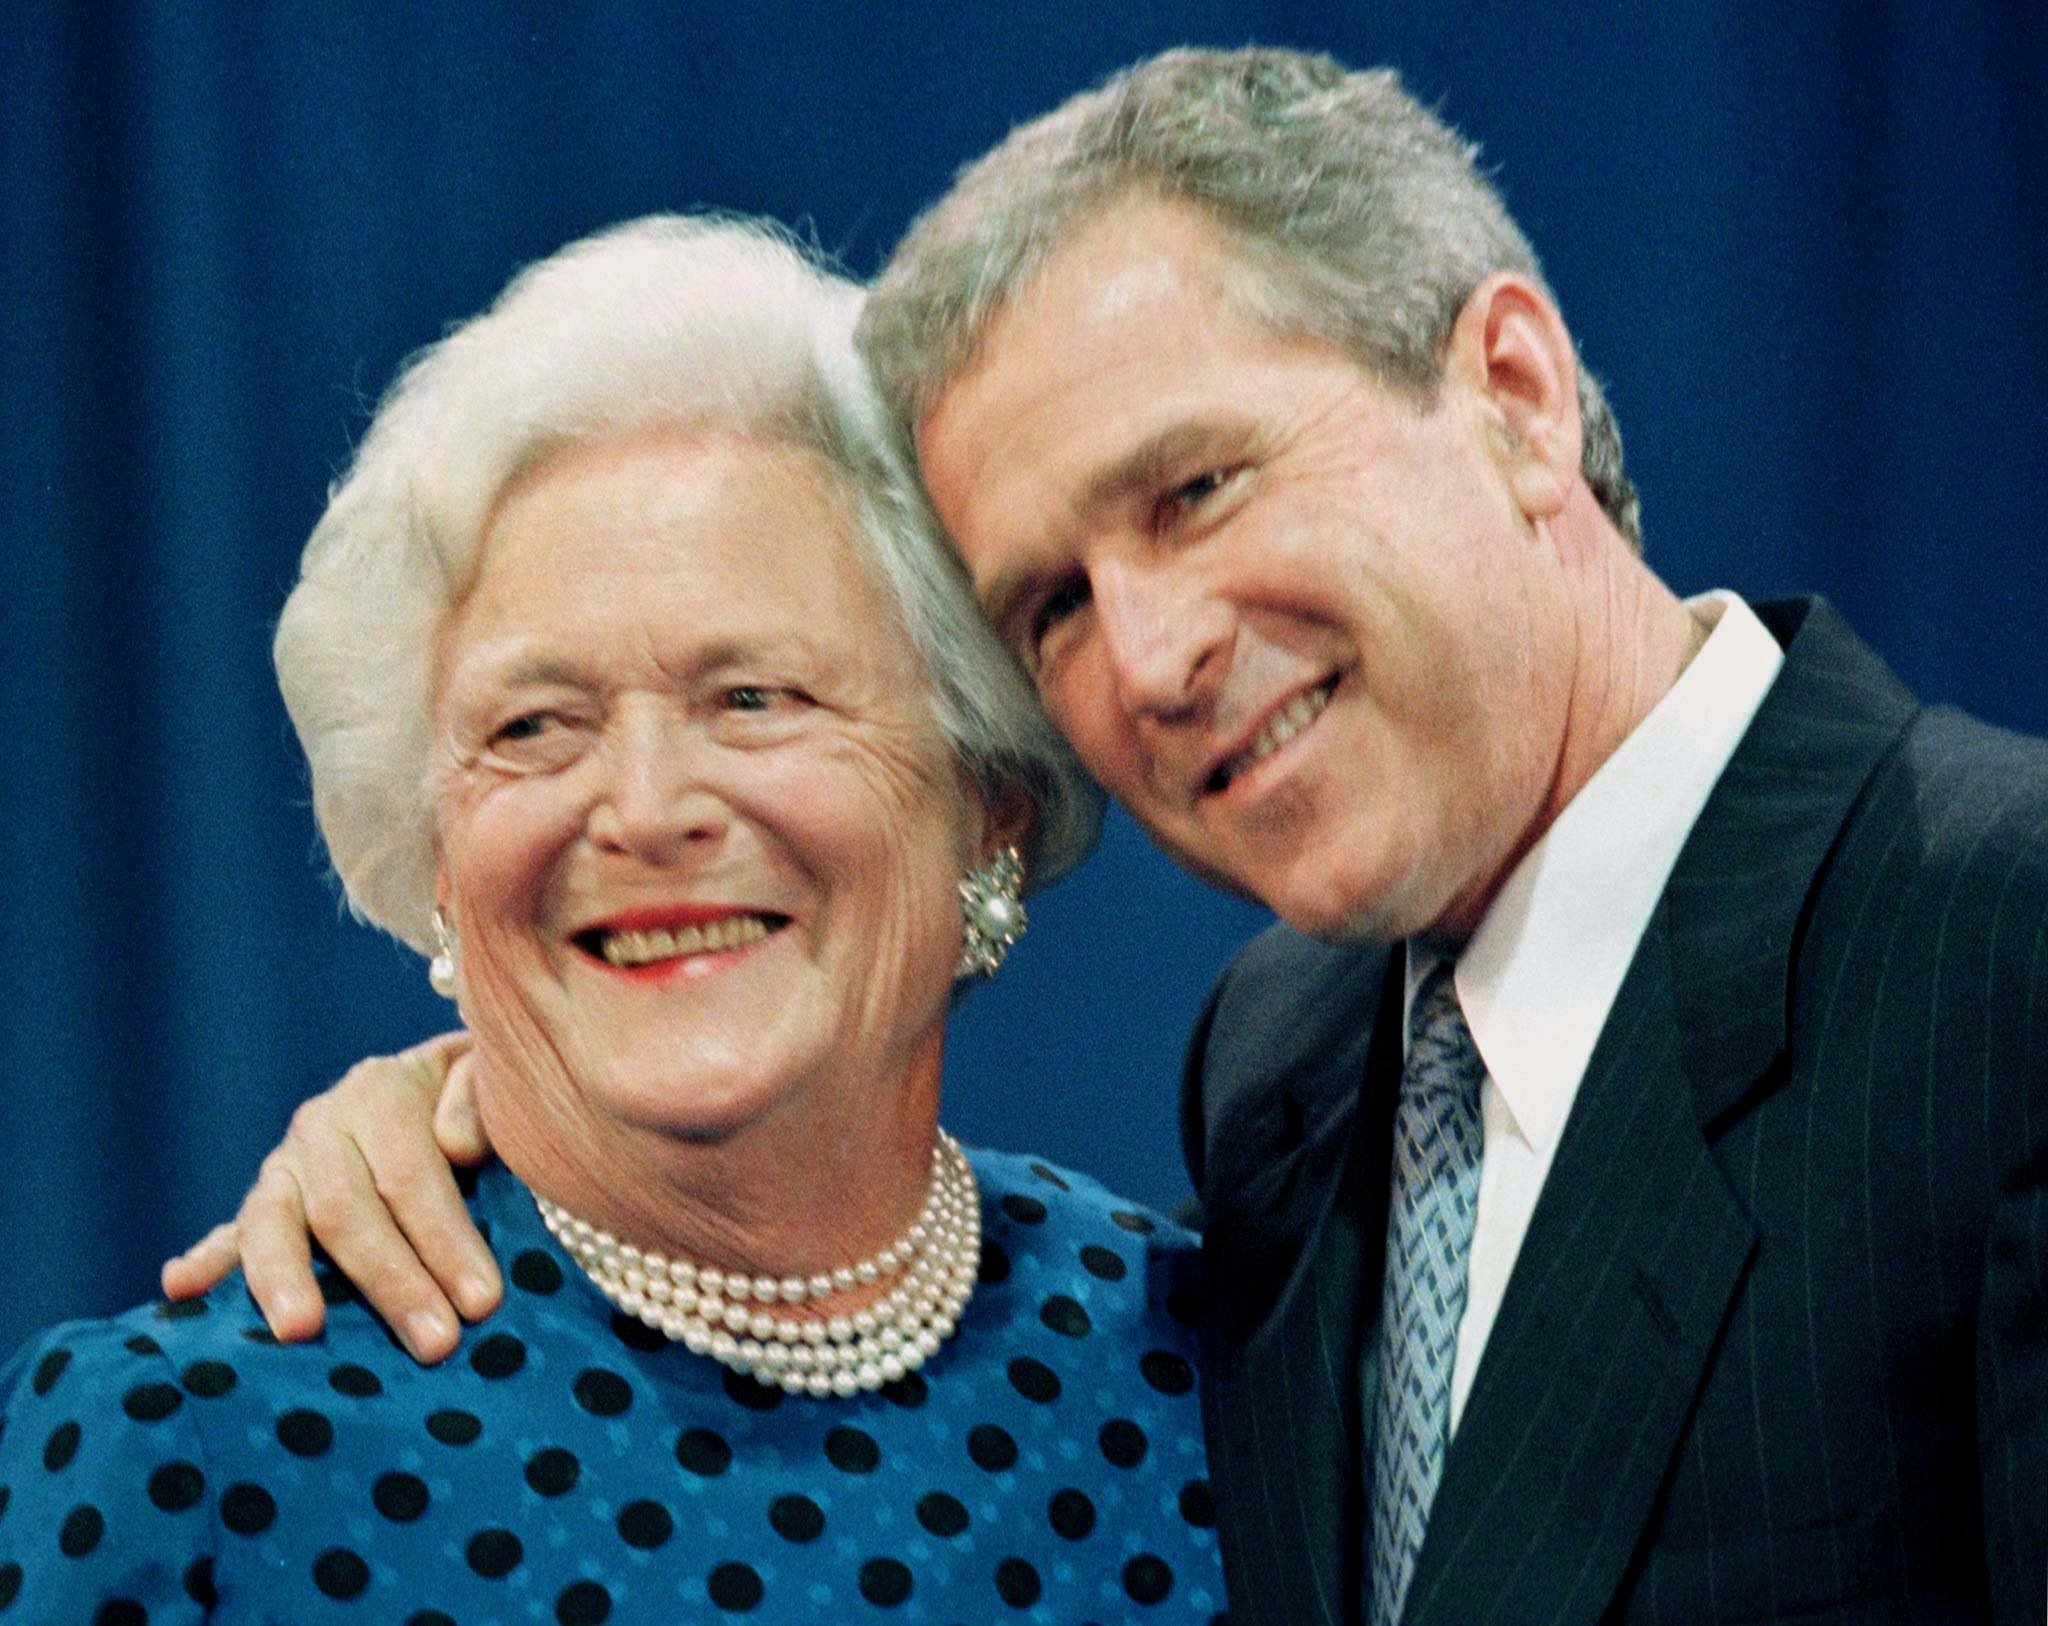 FILE PHOTO: Gov. George W. Bush gives his mother and former first lady Barbara Bush a hug after a family portrait session